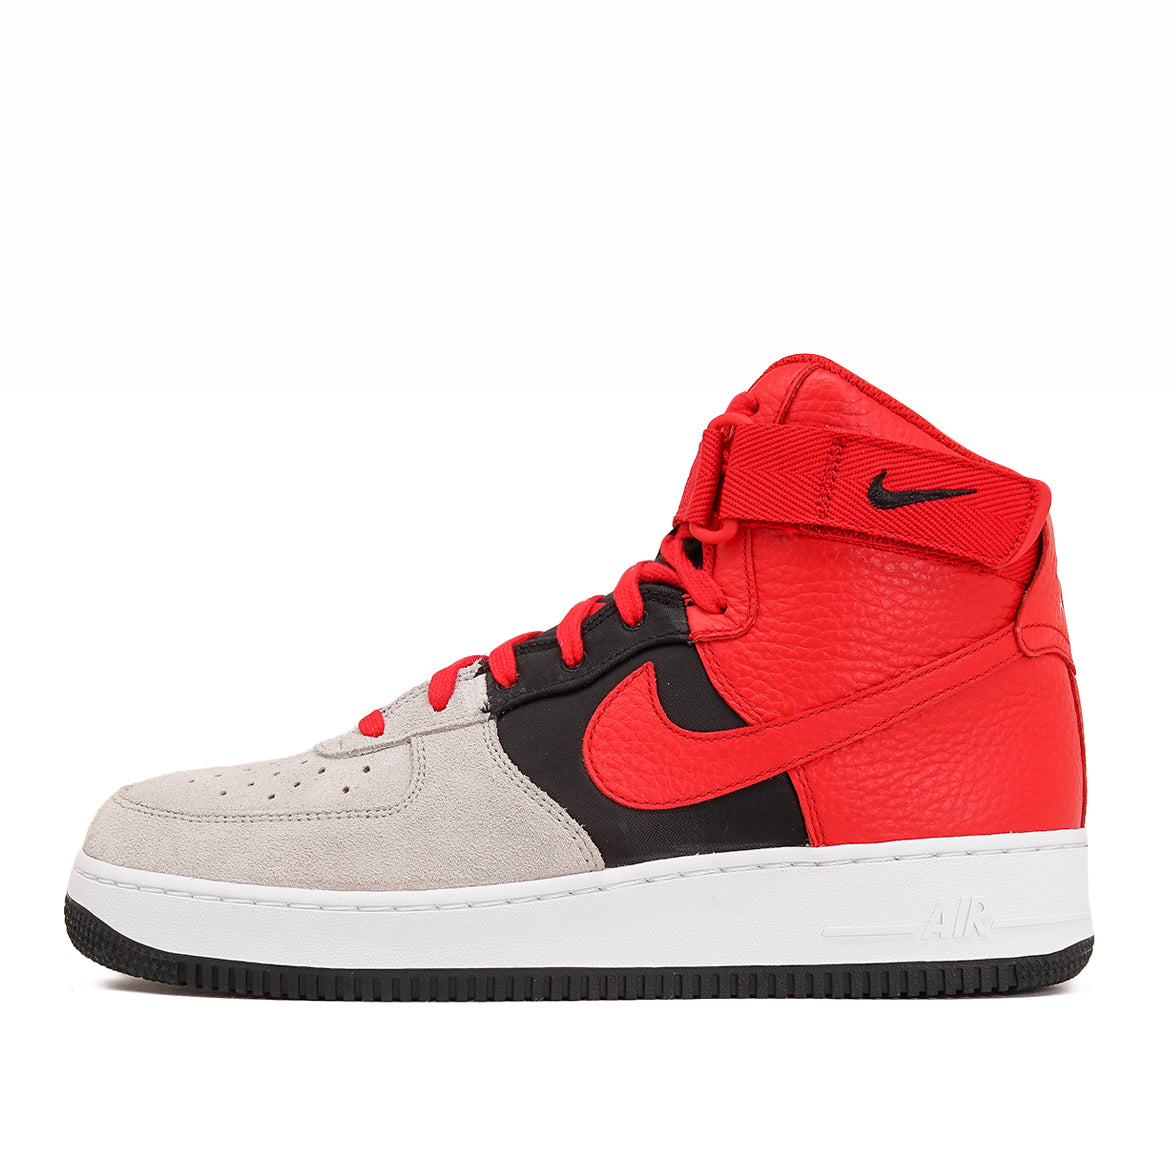 Air Force 1 High 07 Lv8 Bred City Blue